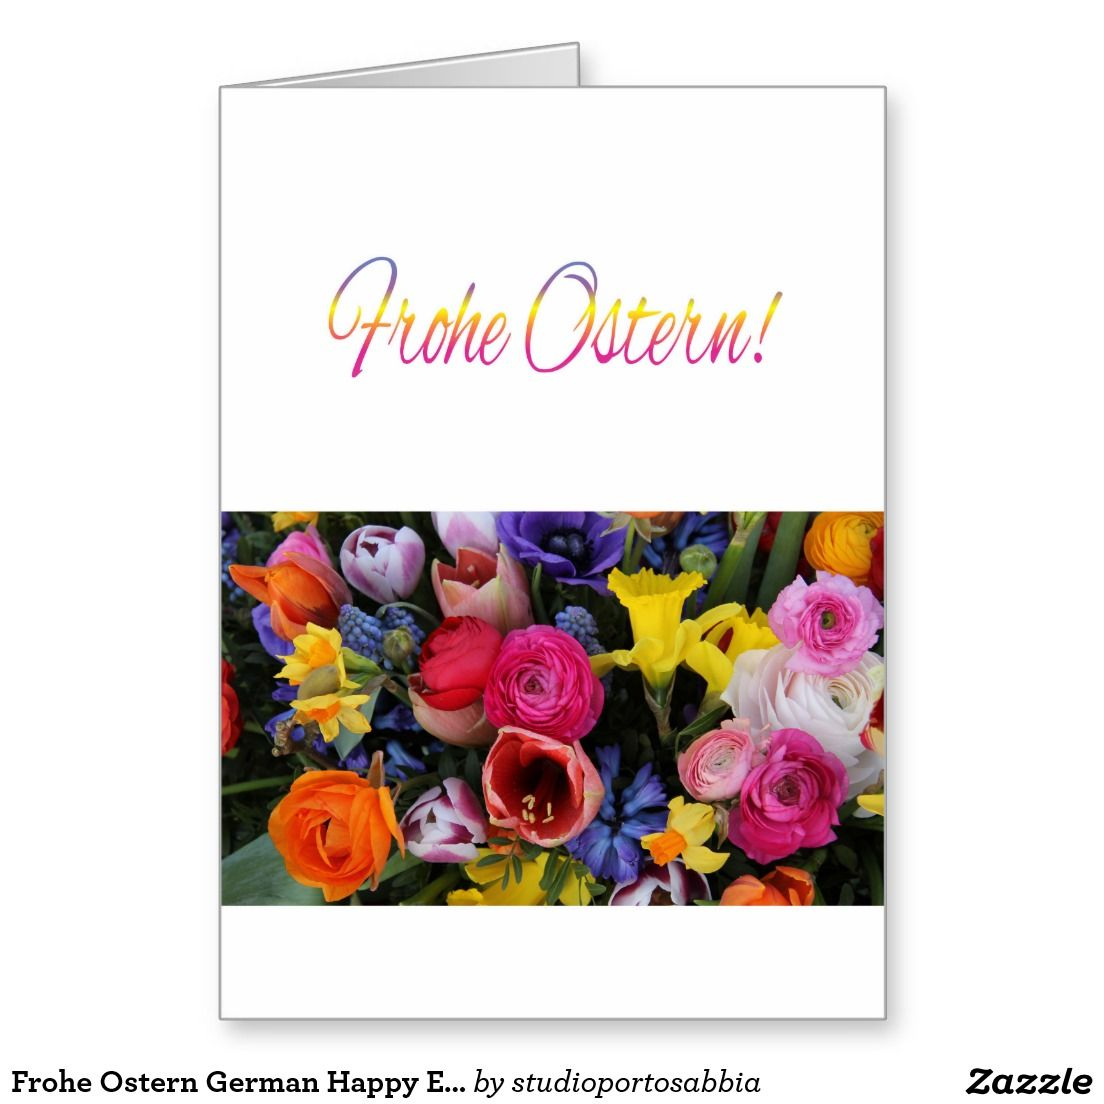 Frohe Ostern German Happy Easter Greeting Card Stuff Sold On